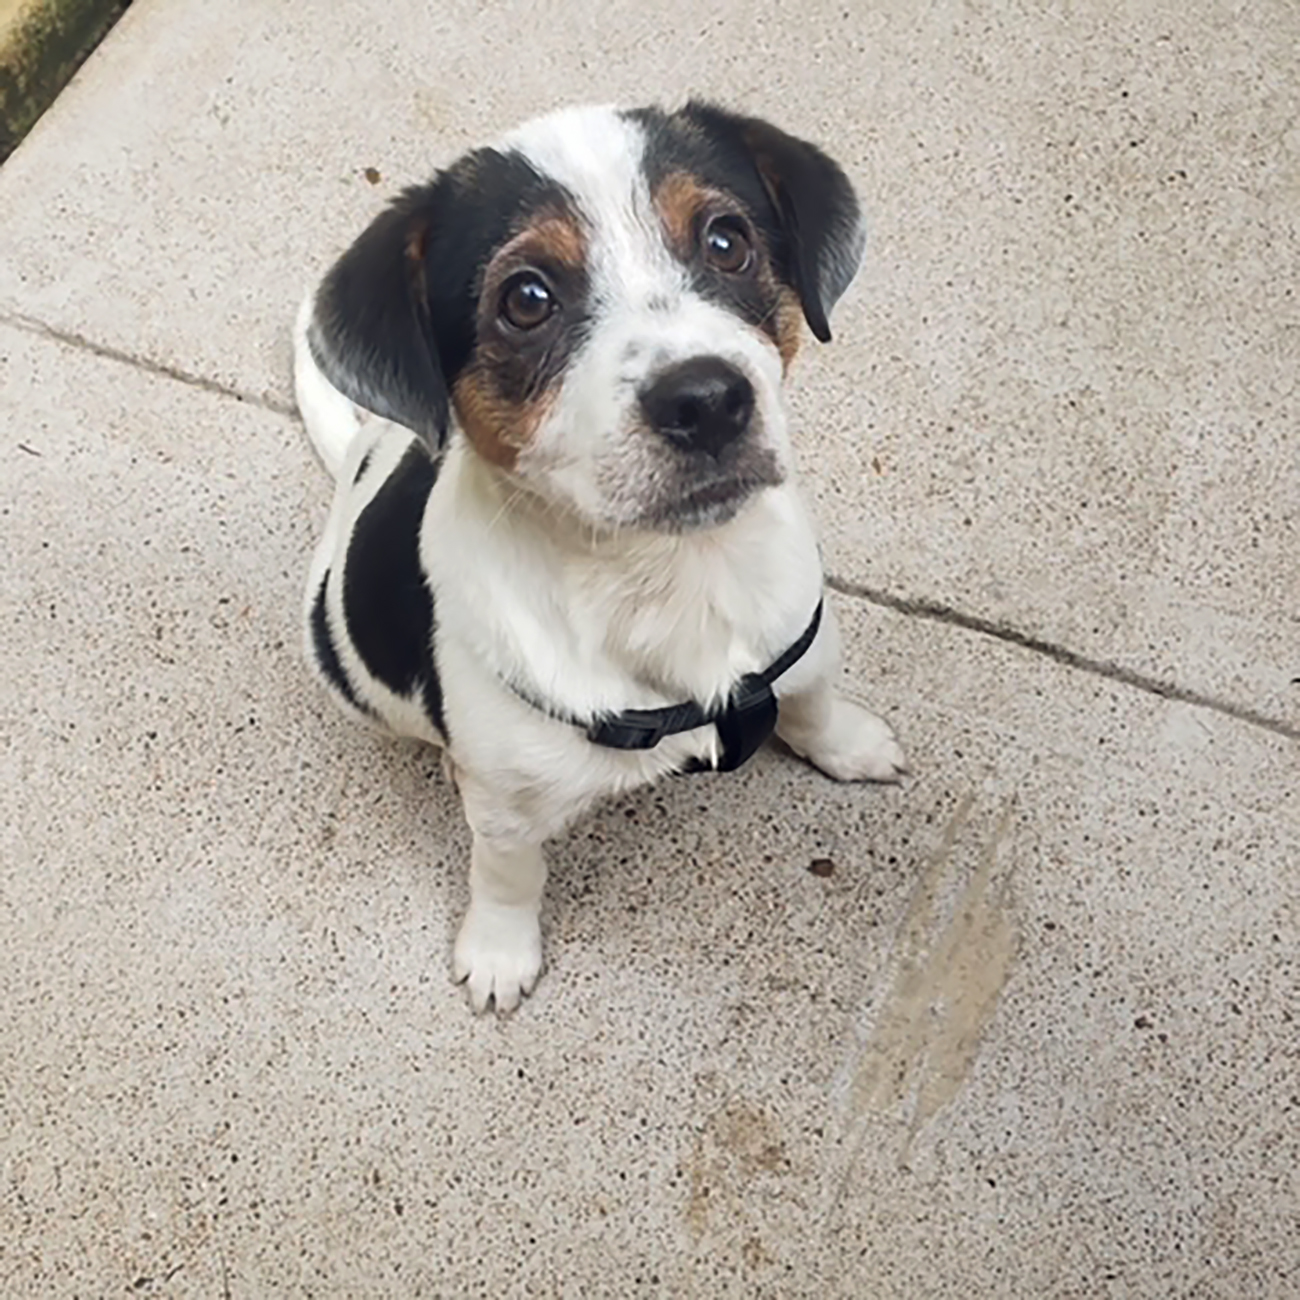 Spotted puppy looks up at camera from sidewalk